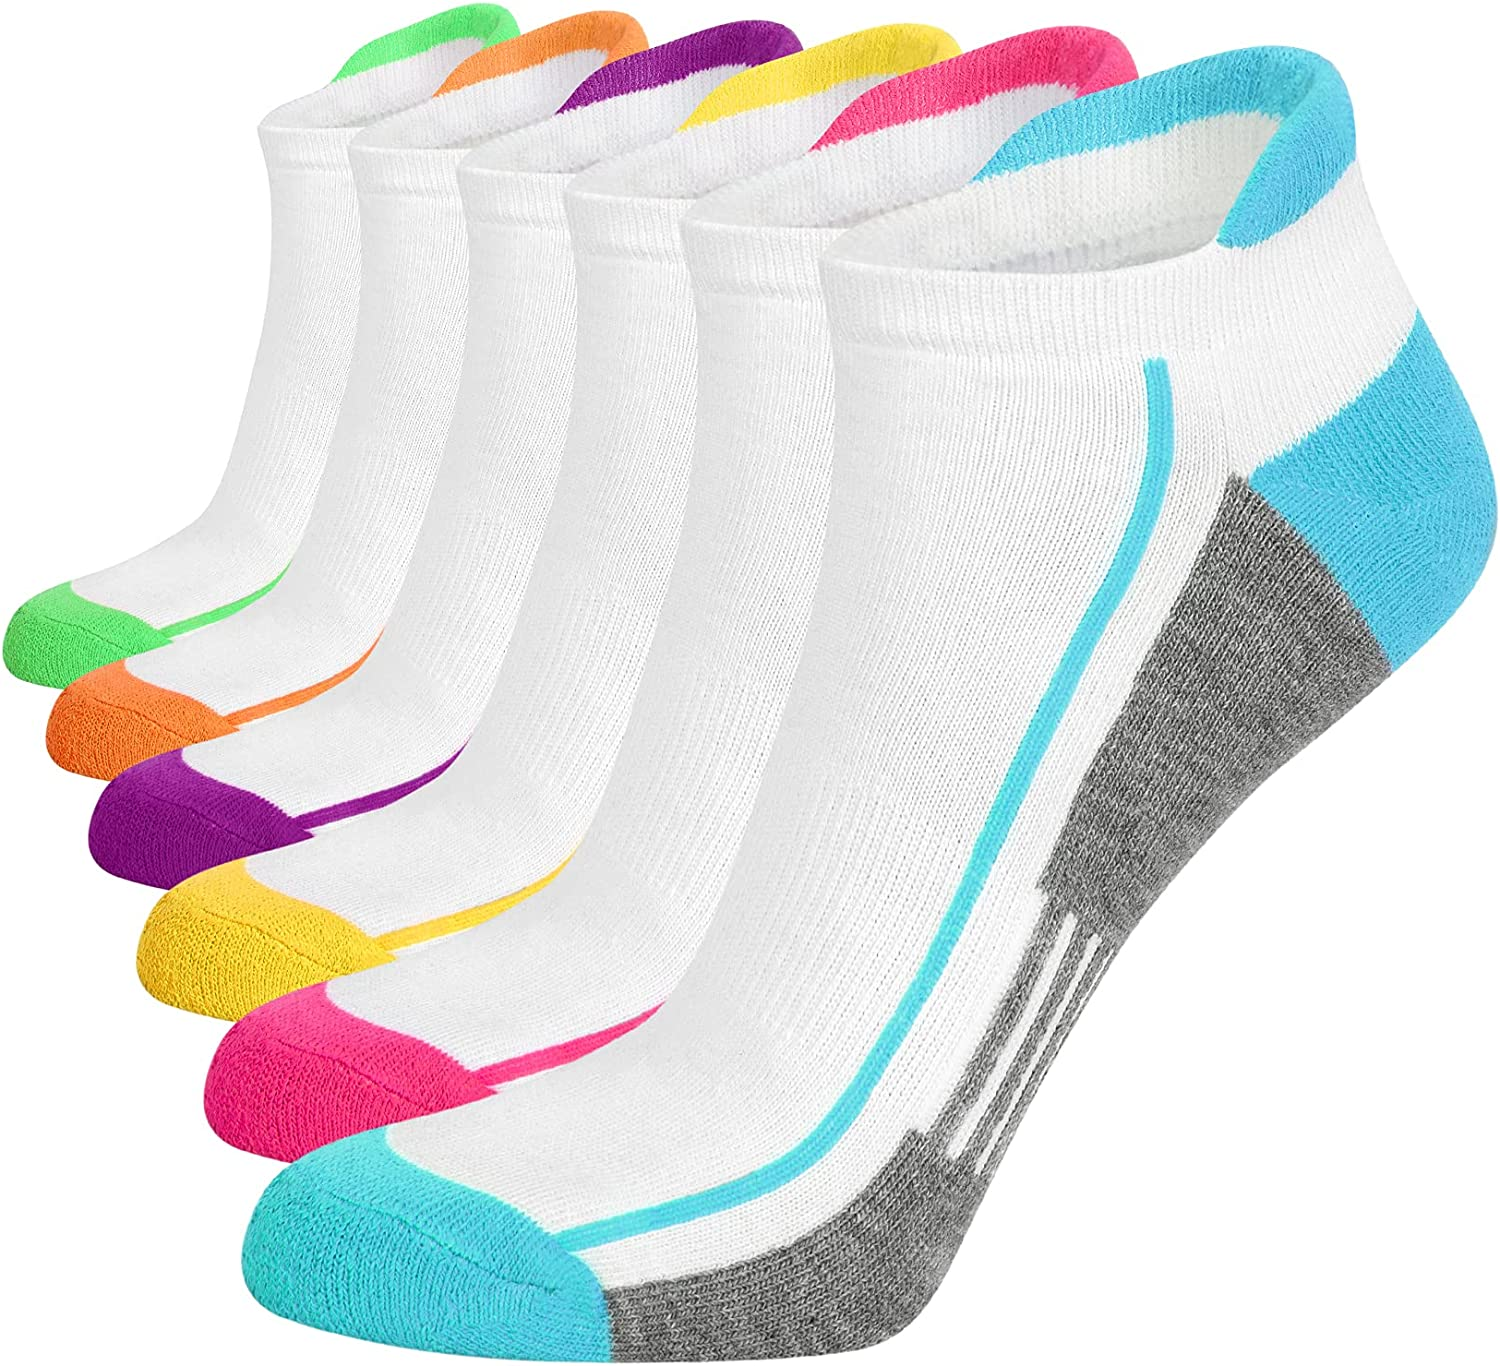 Womens Ankle Socks Athletic Topics on TV Popular brand Low for Cut Wo Cycling Running